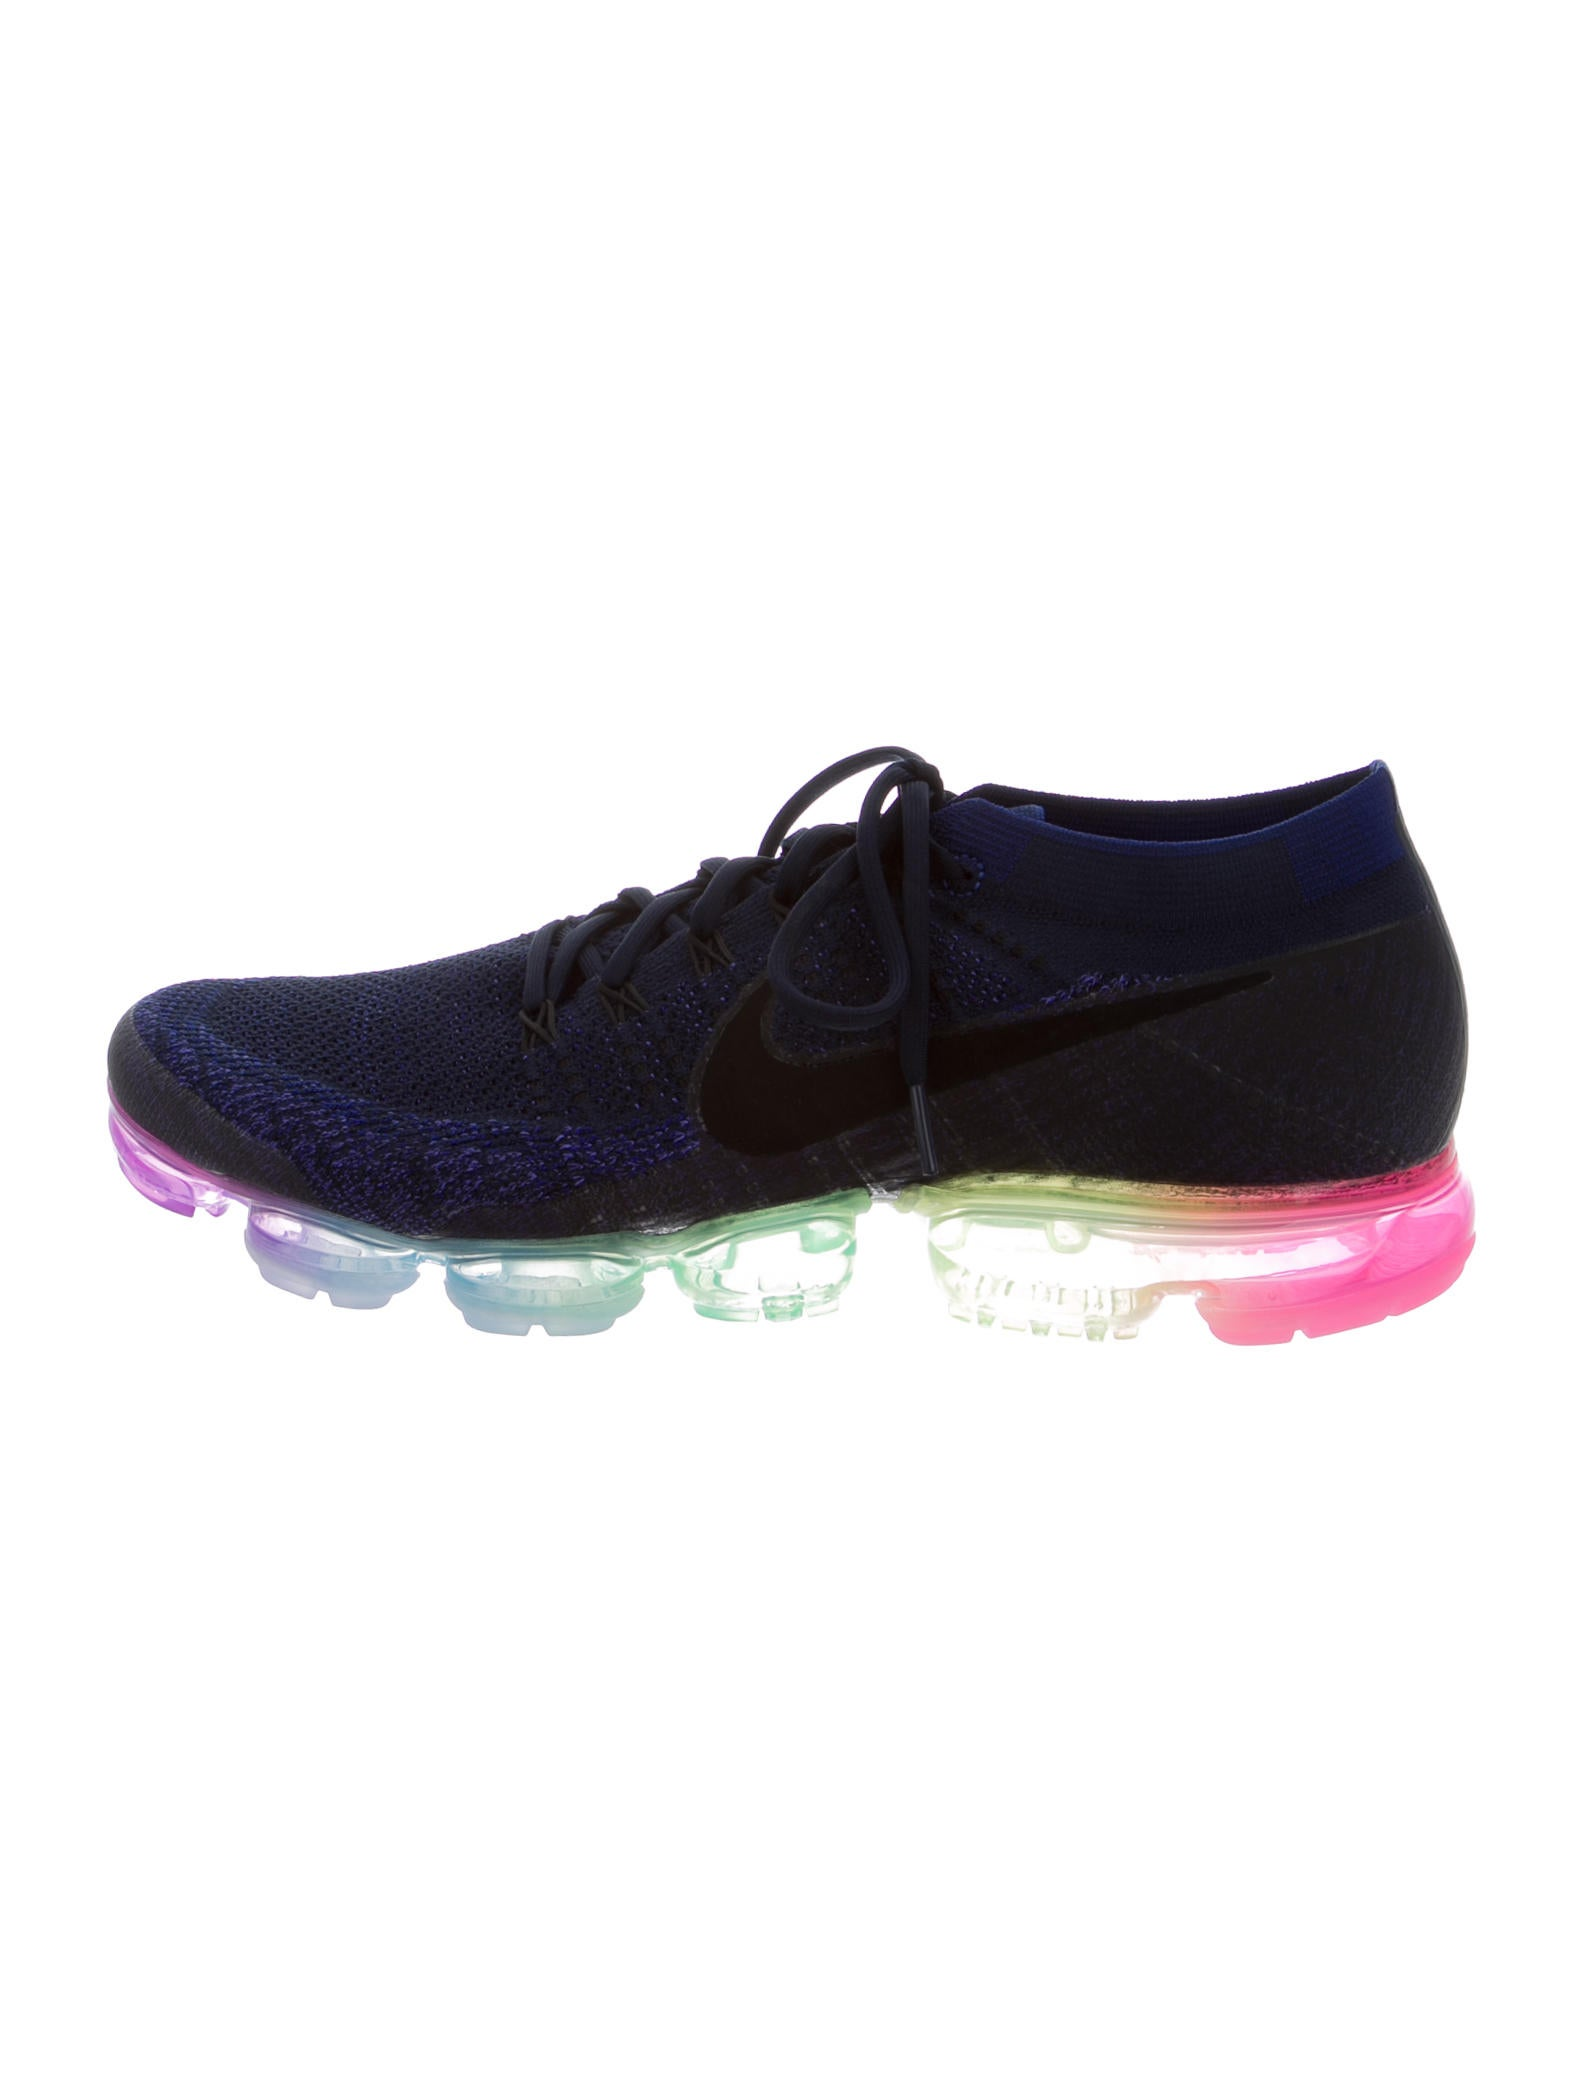 size 40 a9322 aeb45 Nike Air Vapormax Flyknit Betrue Sneakers - Shoes - WU221232 ...